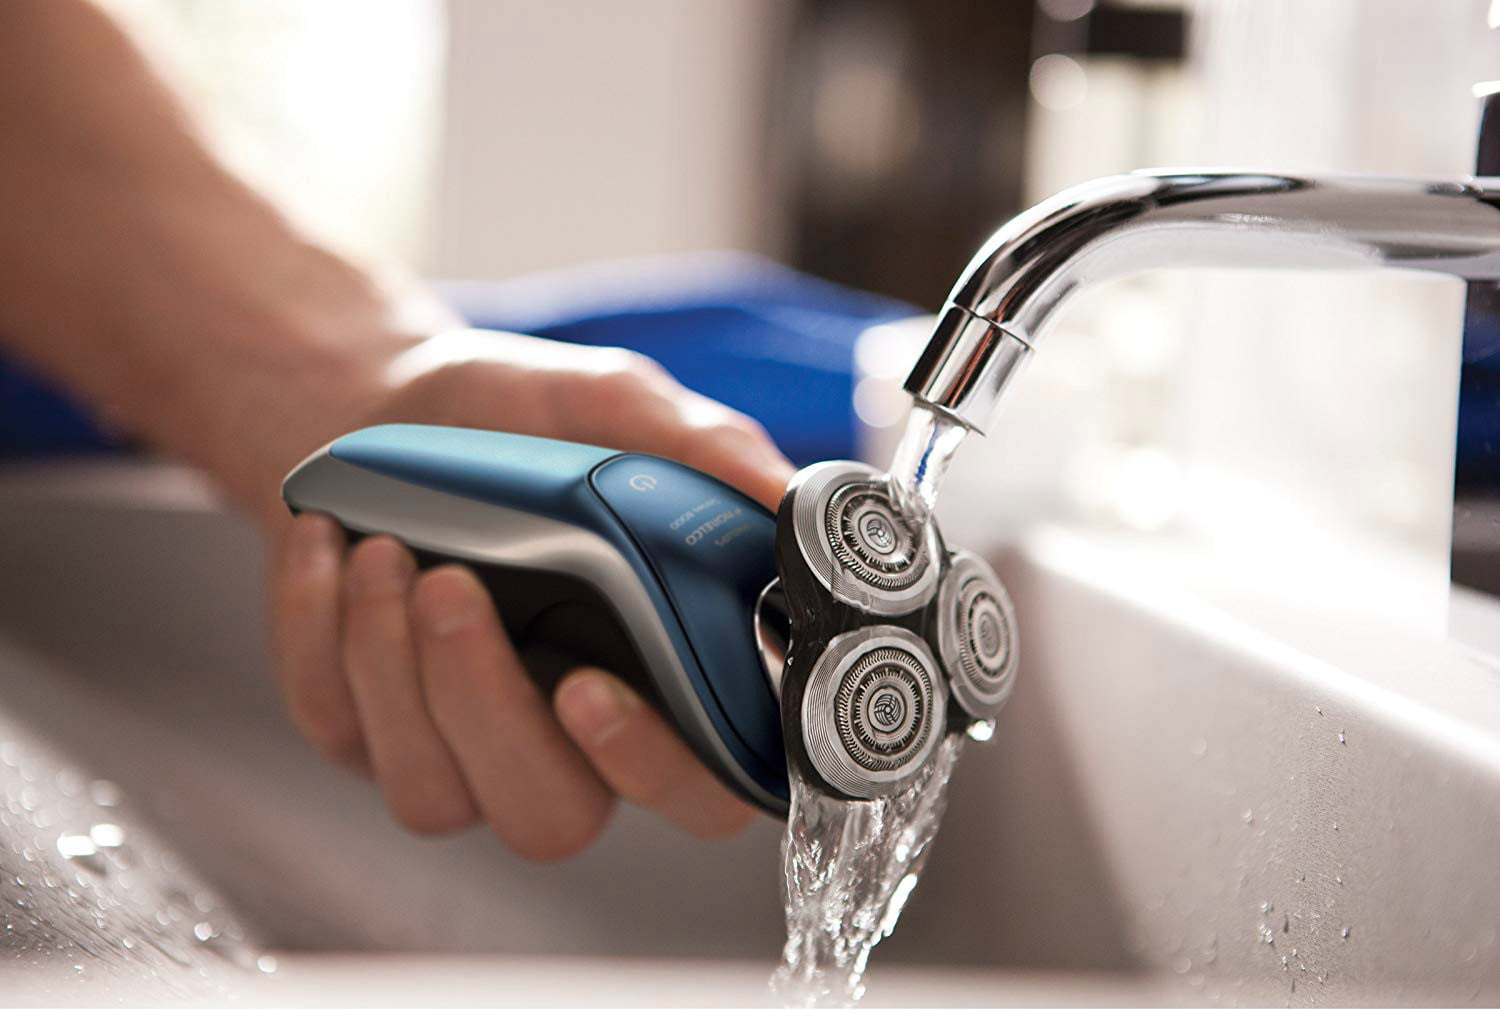 amazon trims philips norelco 8900 wet and dry electric shaver with smartclean  edition s8950 90 04